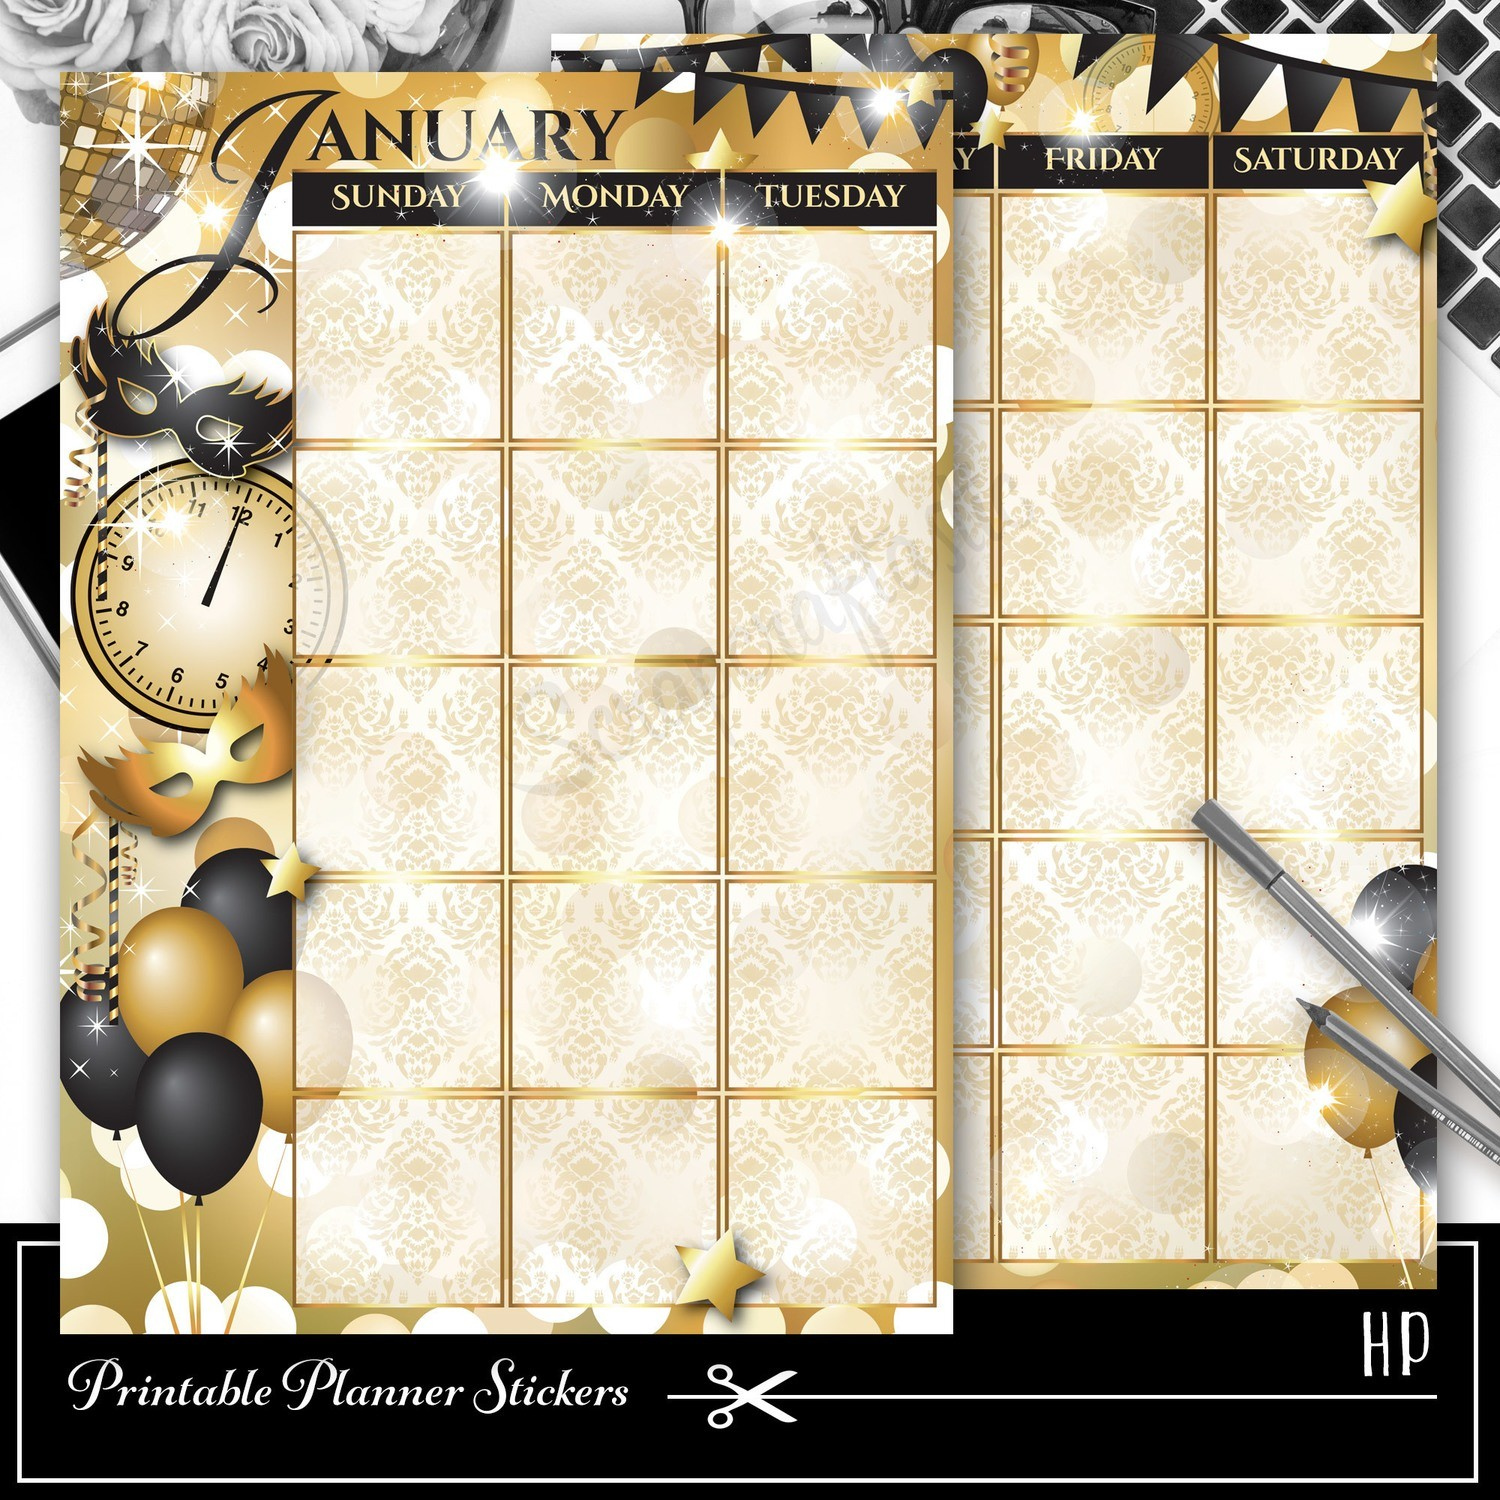 CLASSIC DISC - January Monthly Planner Spread Printable Planner Sticker Overlay for classic size Mambi Happy Planner